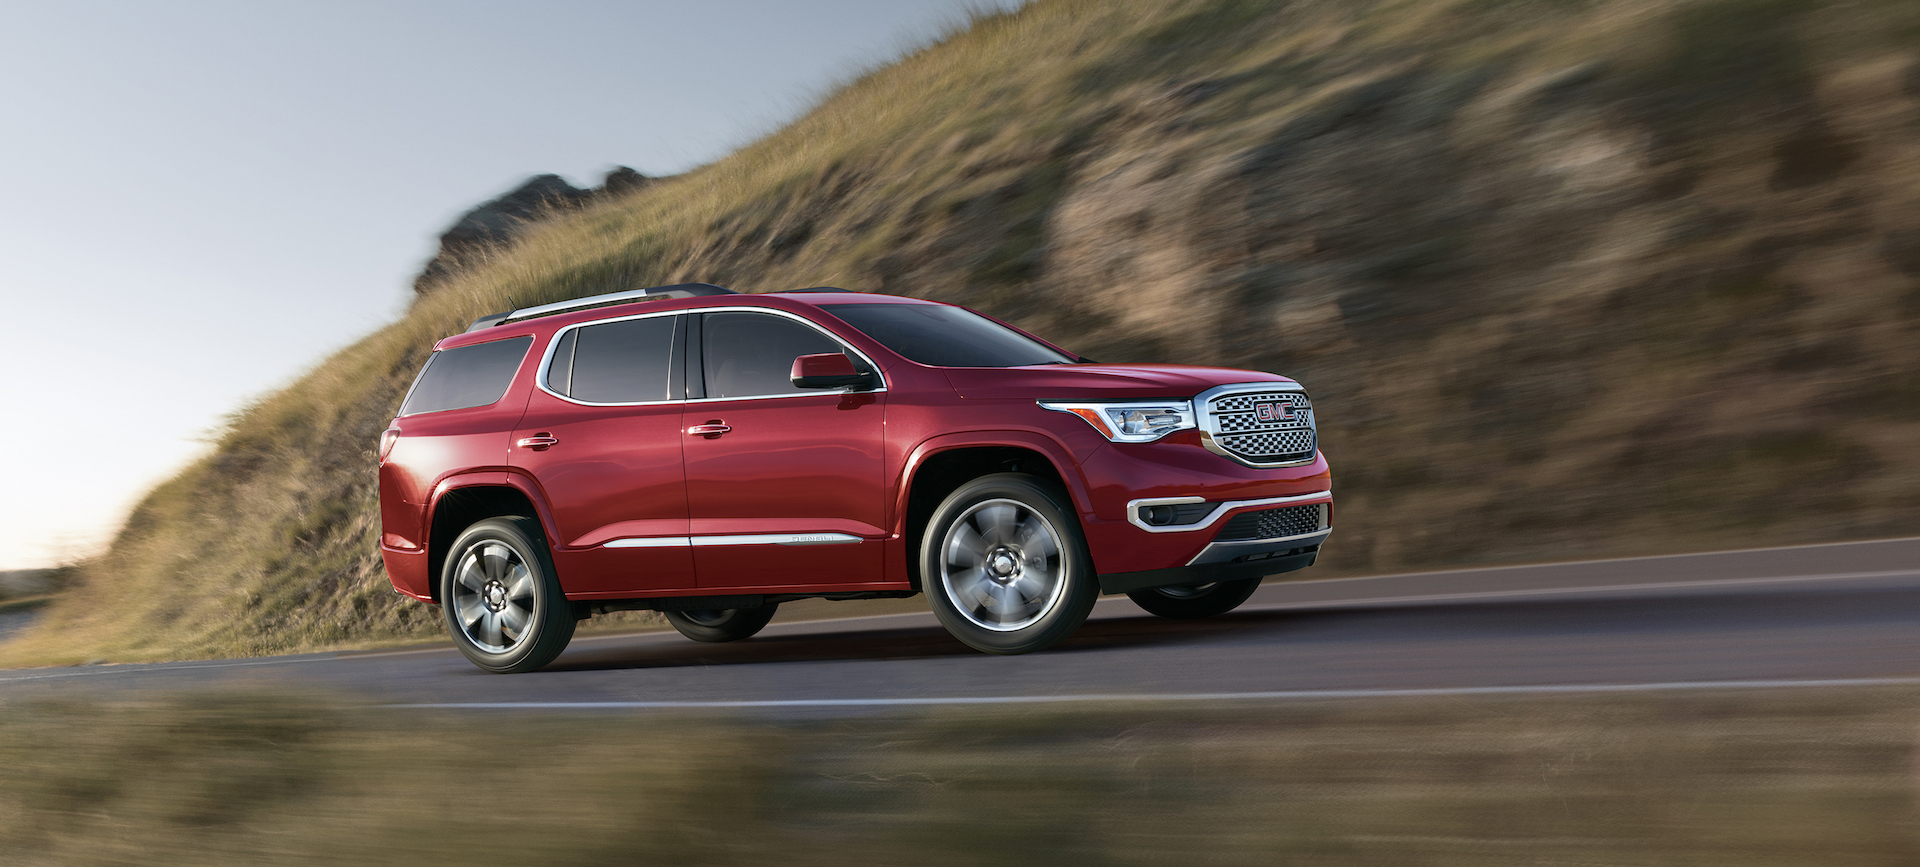 hight resolution of 2017 gmc acadia compare cars